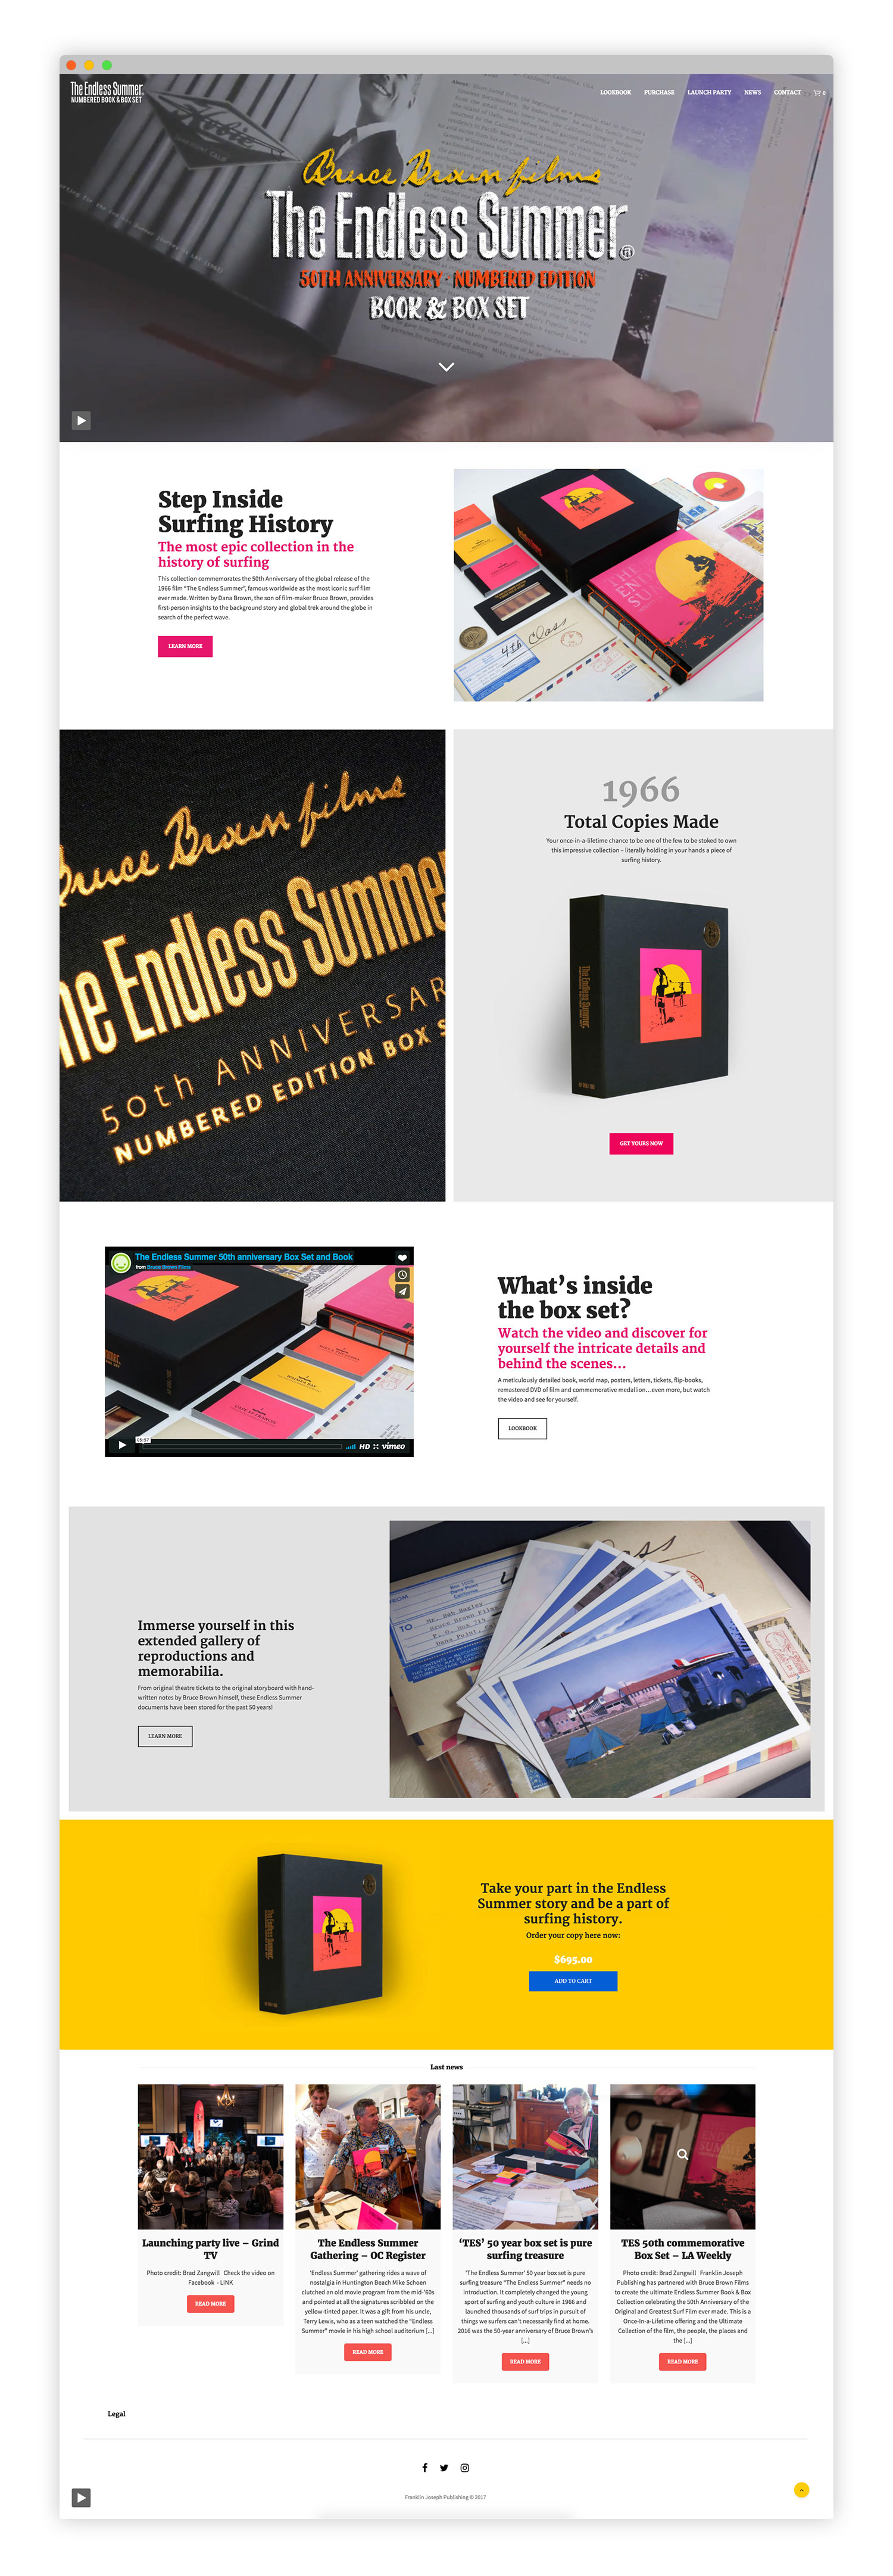 1-THE-ENDLESS-SUMMER-WEBSITE-MANUEL-SERRA-SAEZ-SERRAYSAEZ-DESIGN-GRAPHIC.jpg